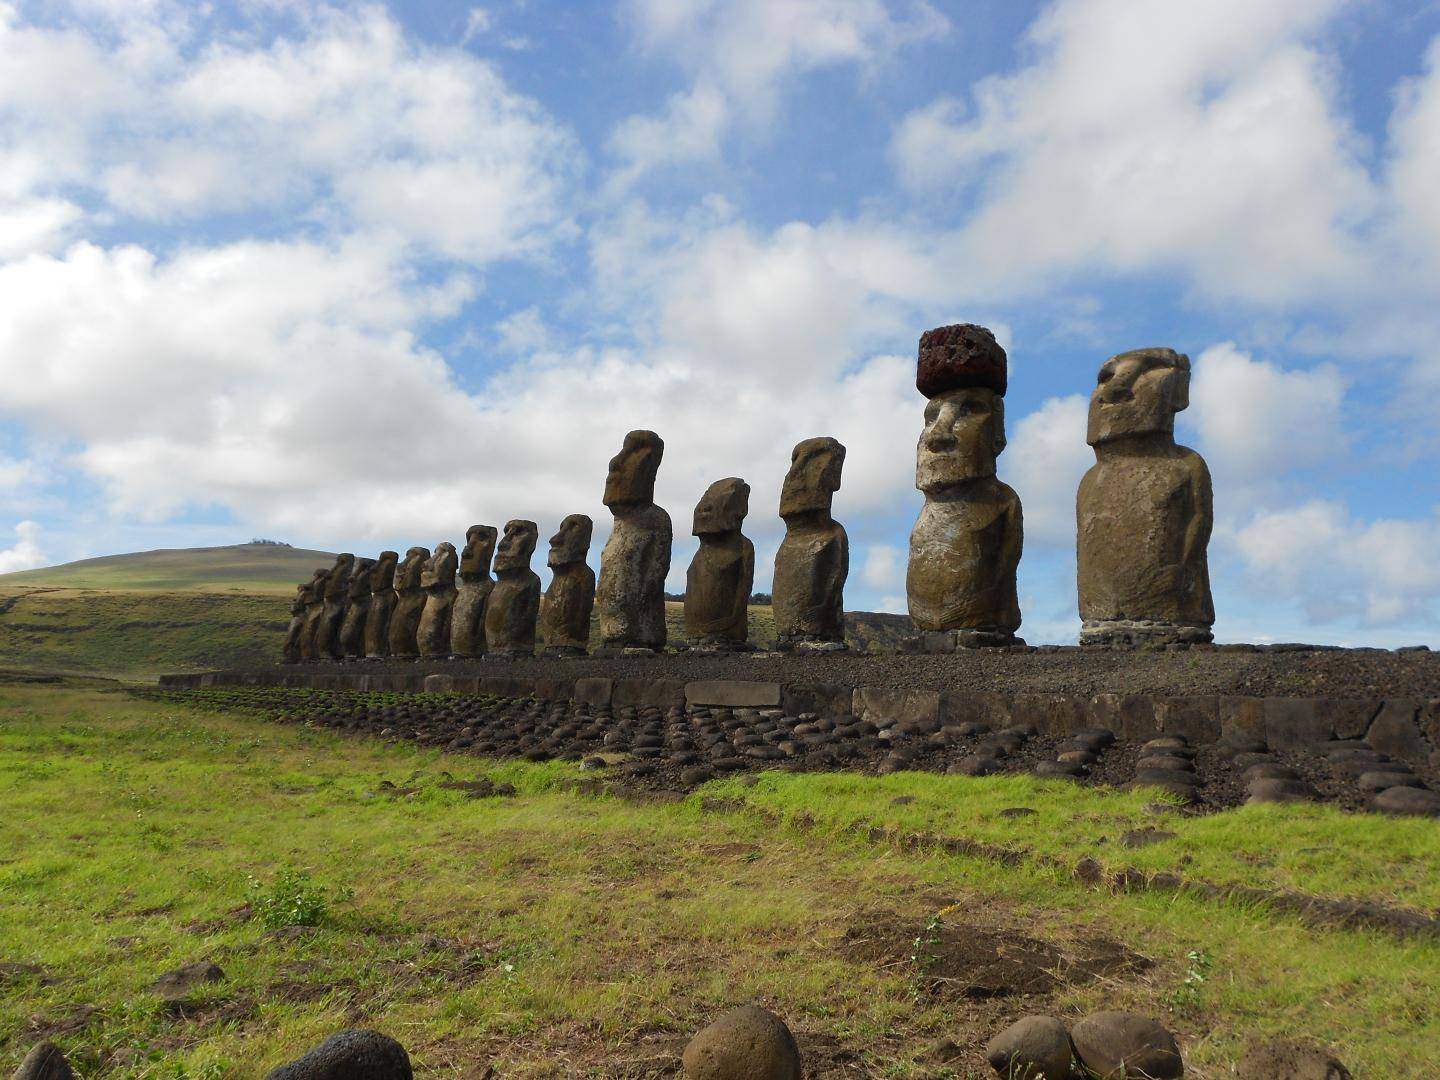 We may finally know how Easter Island's giant statues got their jaunty stone hats